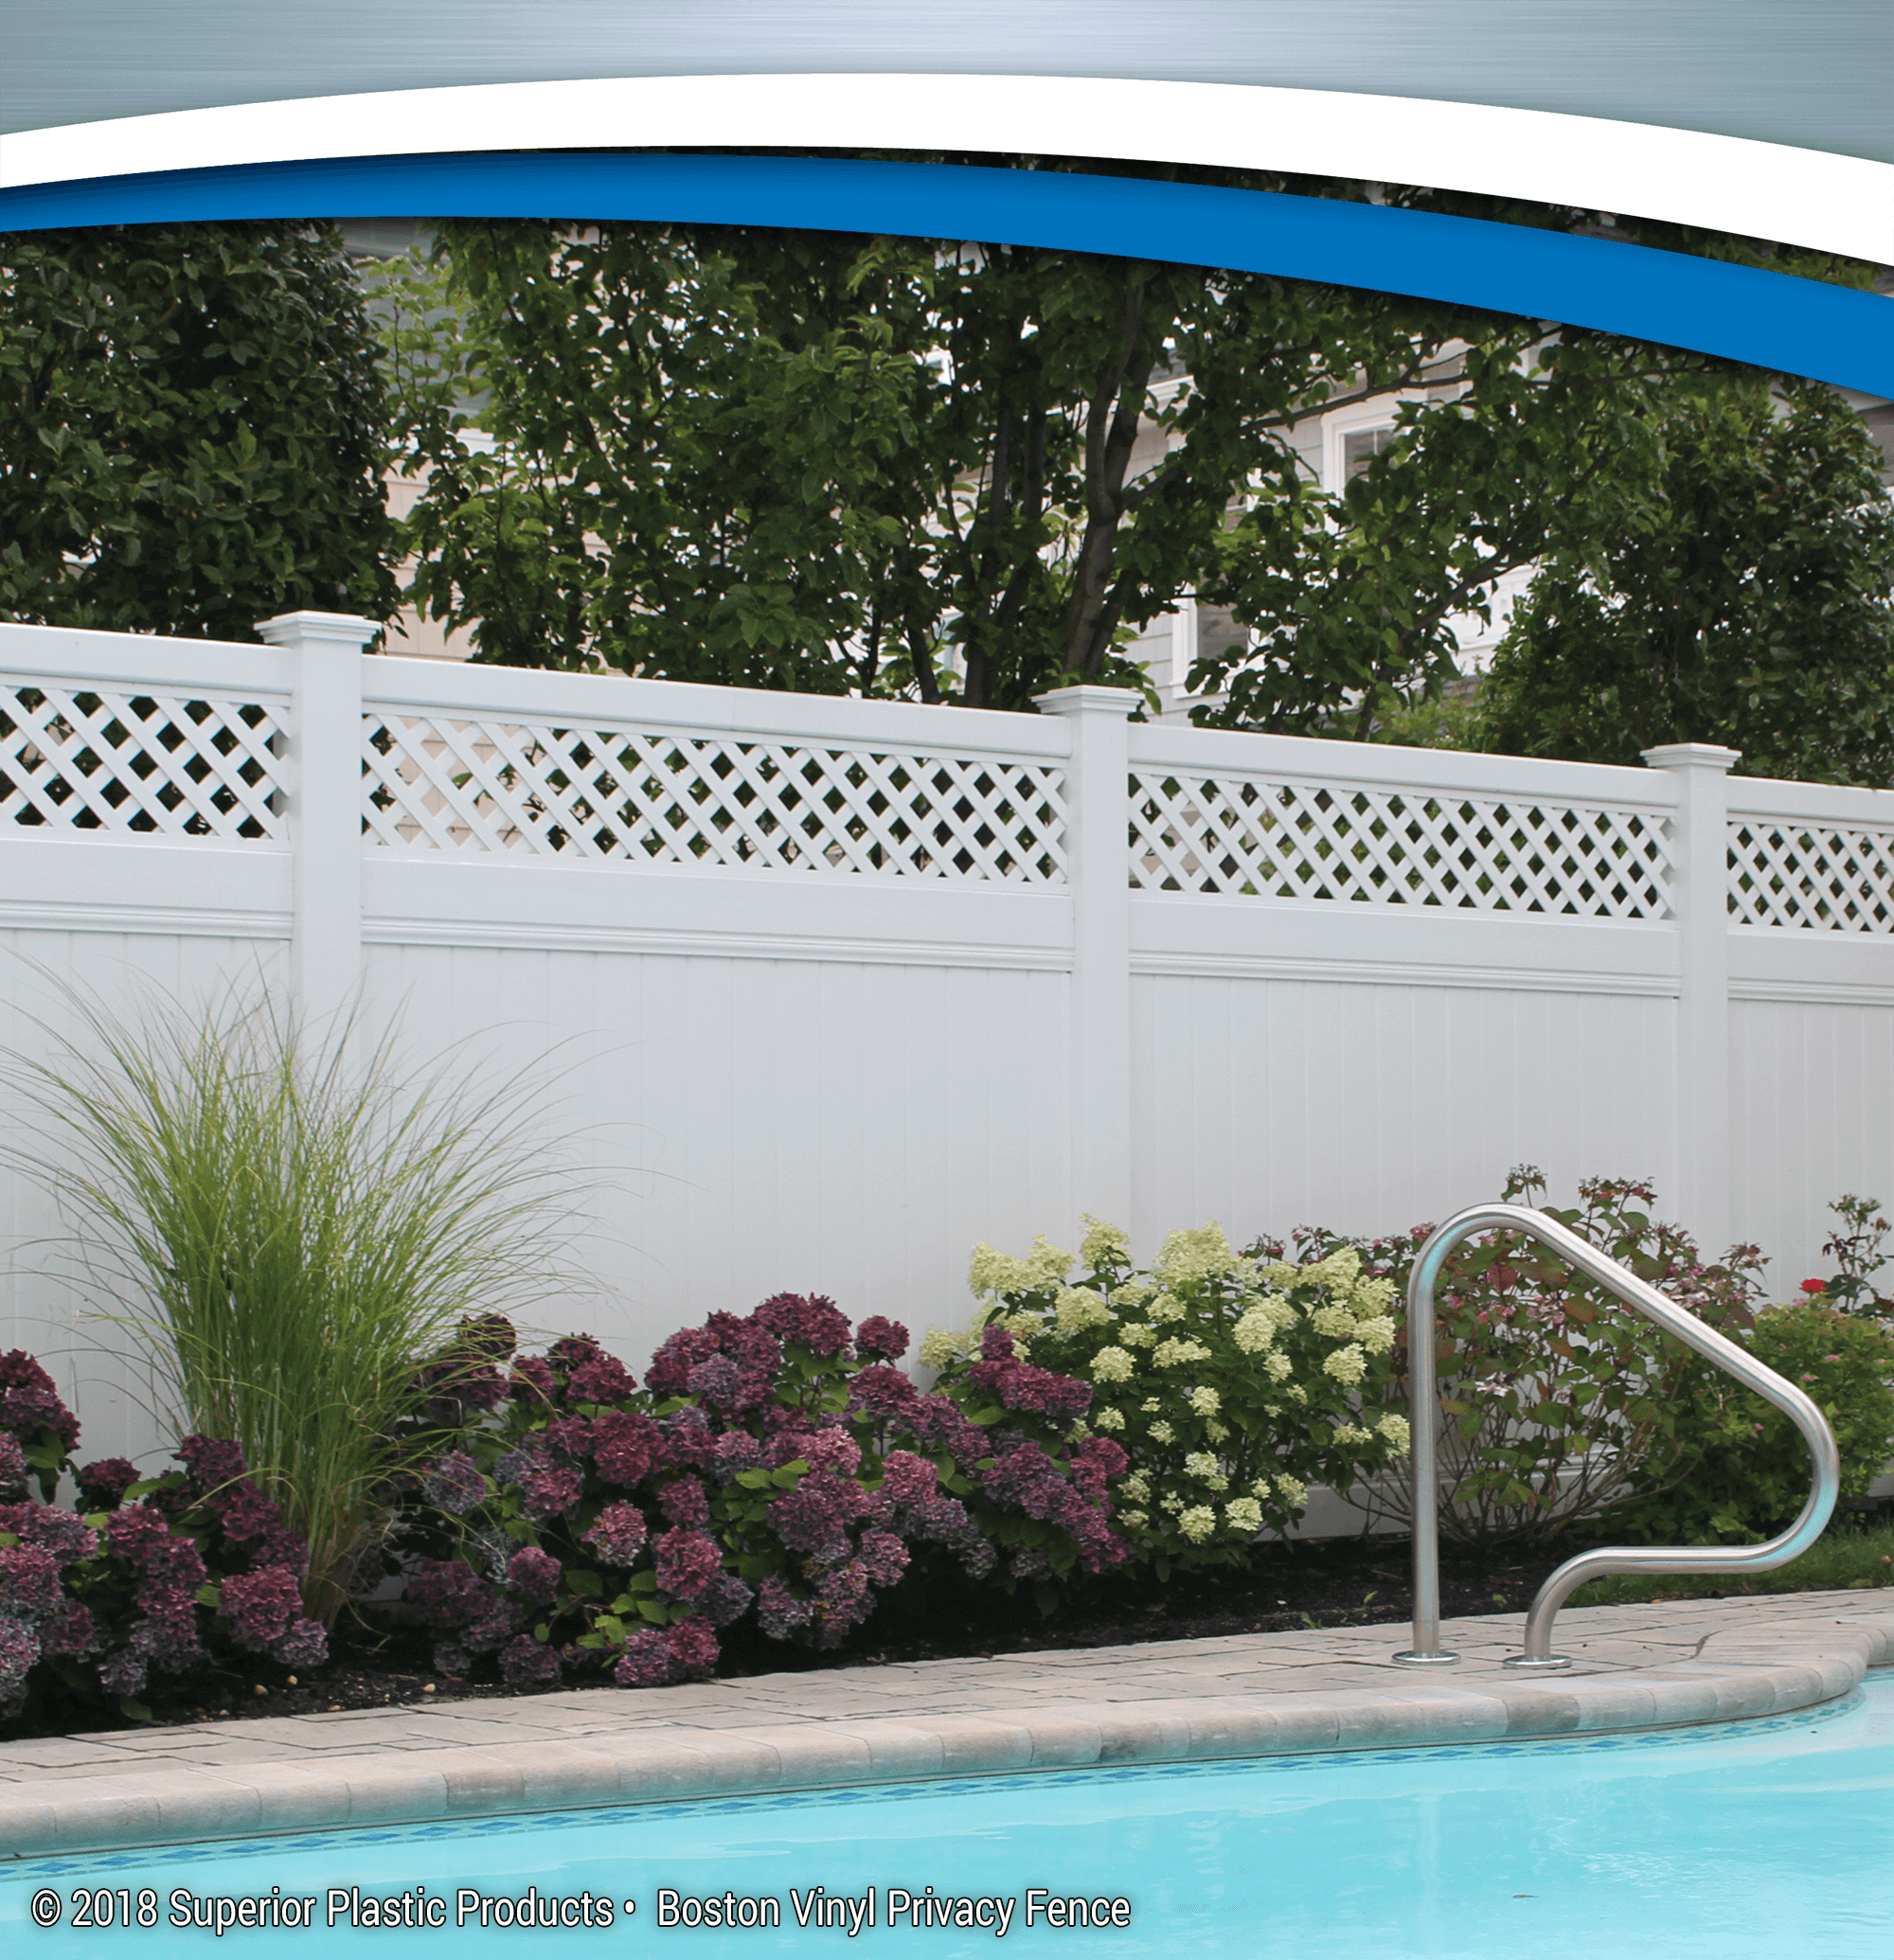 Boston Vinyl Privacy Fence - Superior Plastic Products